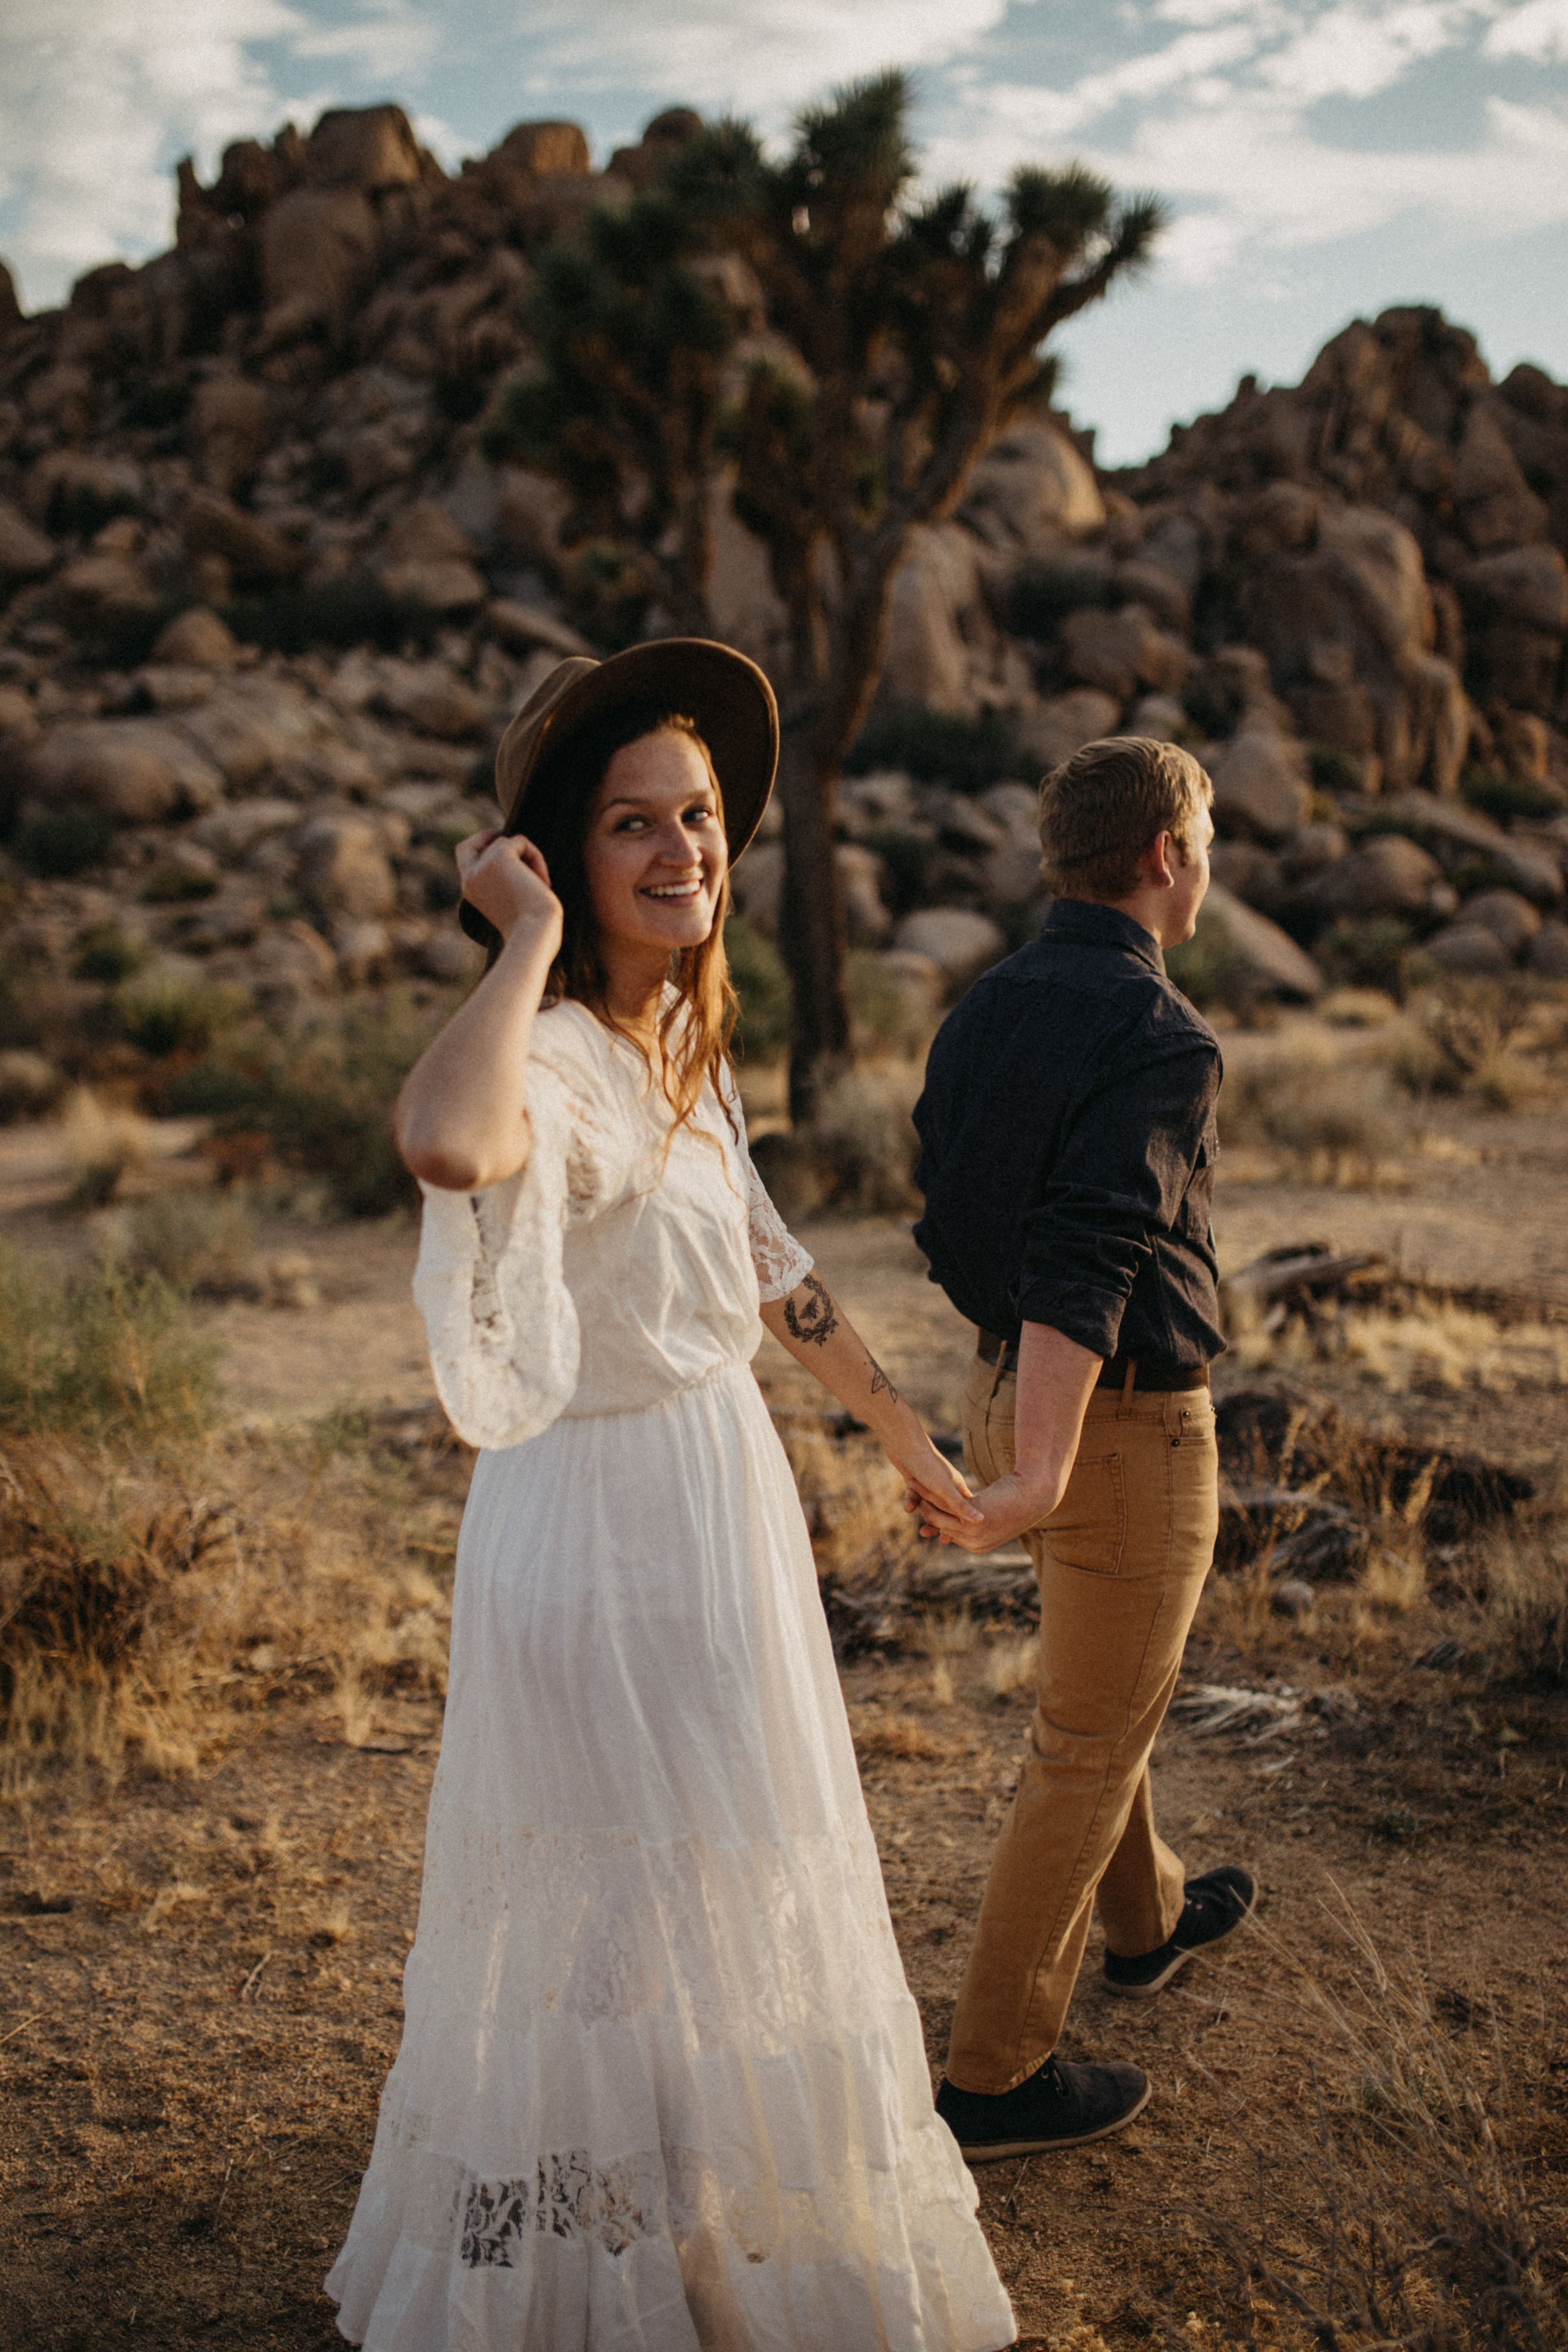 Joshua Tree National Park Adventure Couples Session Photographer Payton Marie Photography-20.jpg